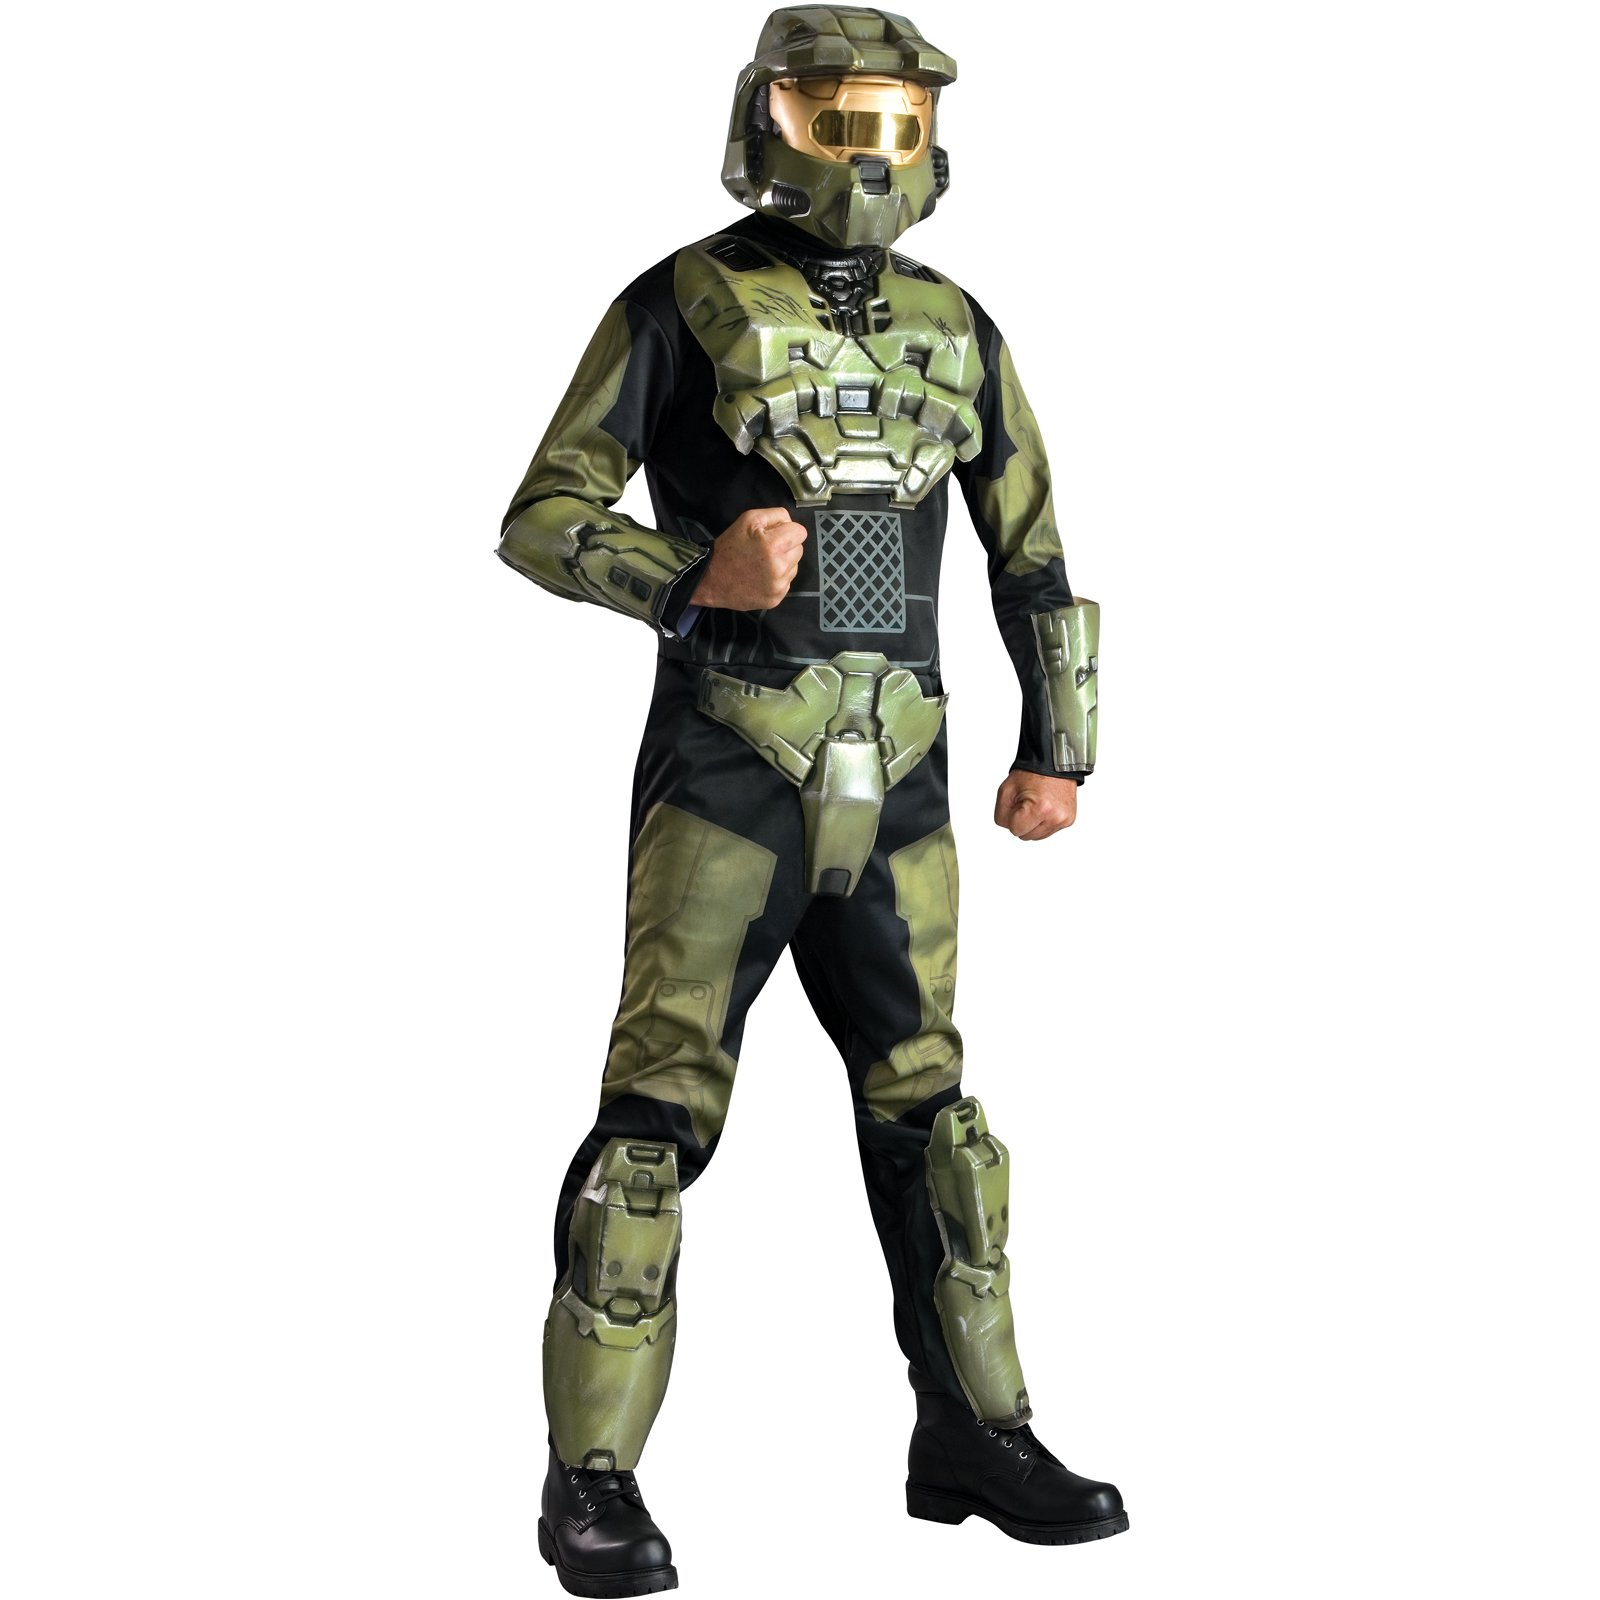 Halo 3 Deluxe Master Chief Teen/Adult Costume